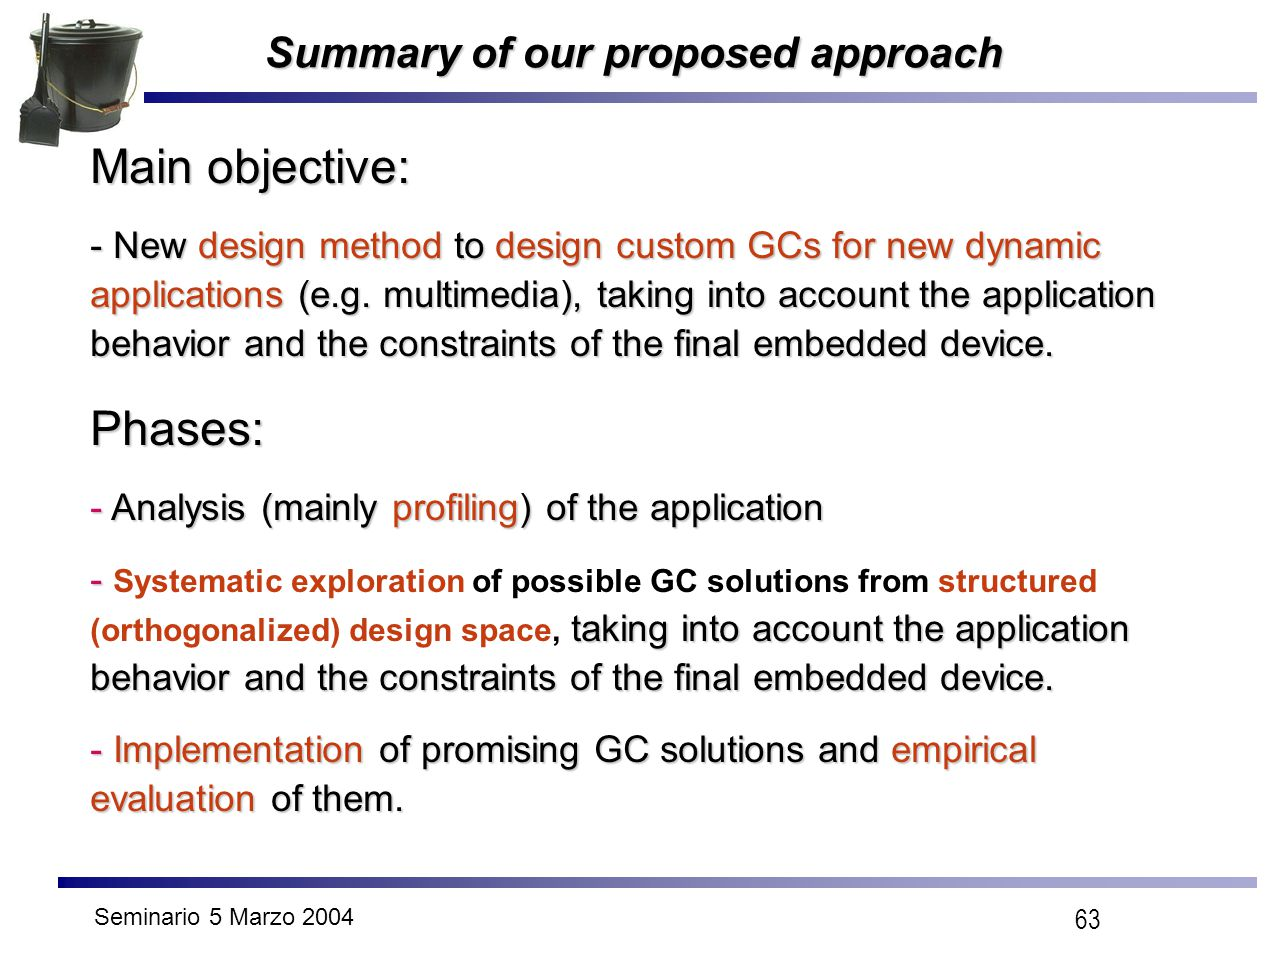 Seminario 5 Marzo 2004 63 Summary of our proposed approach Main objective: - New design method to design custom GCs for new dynamic applications (e.g.